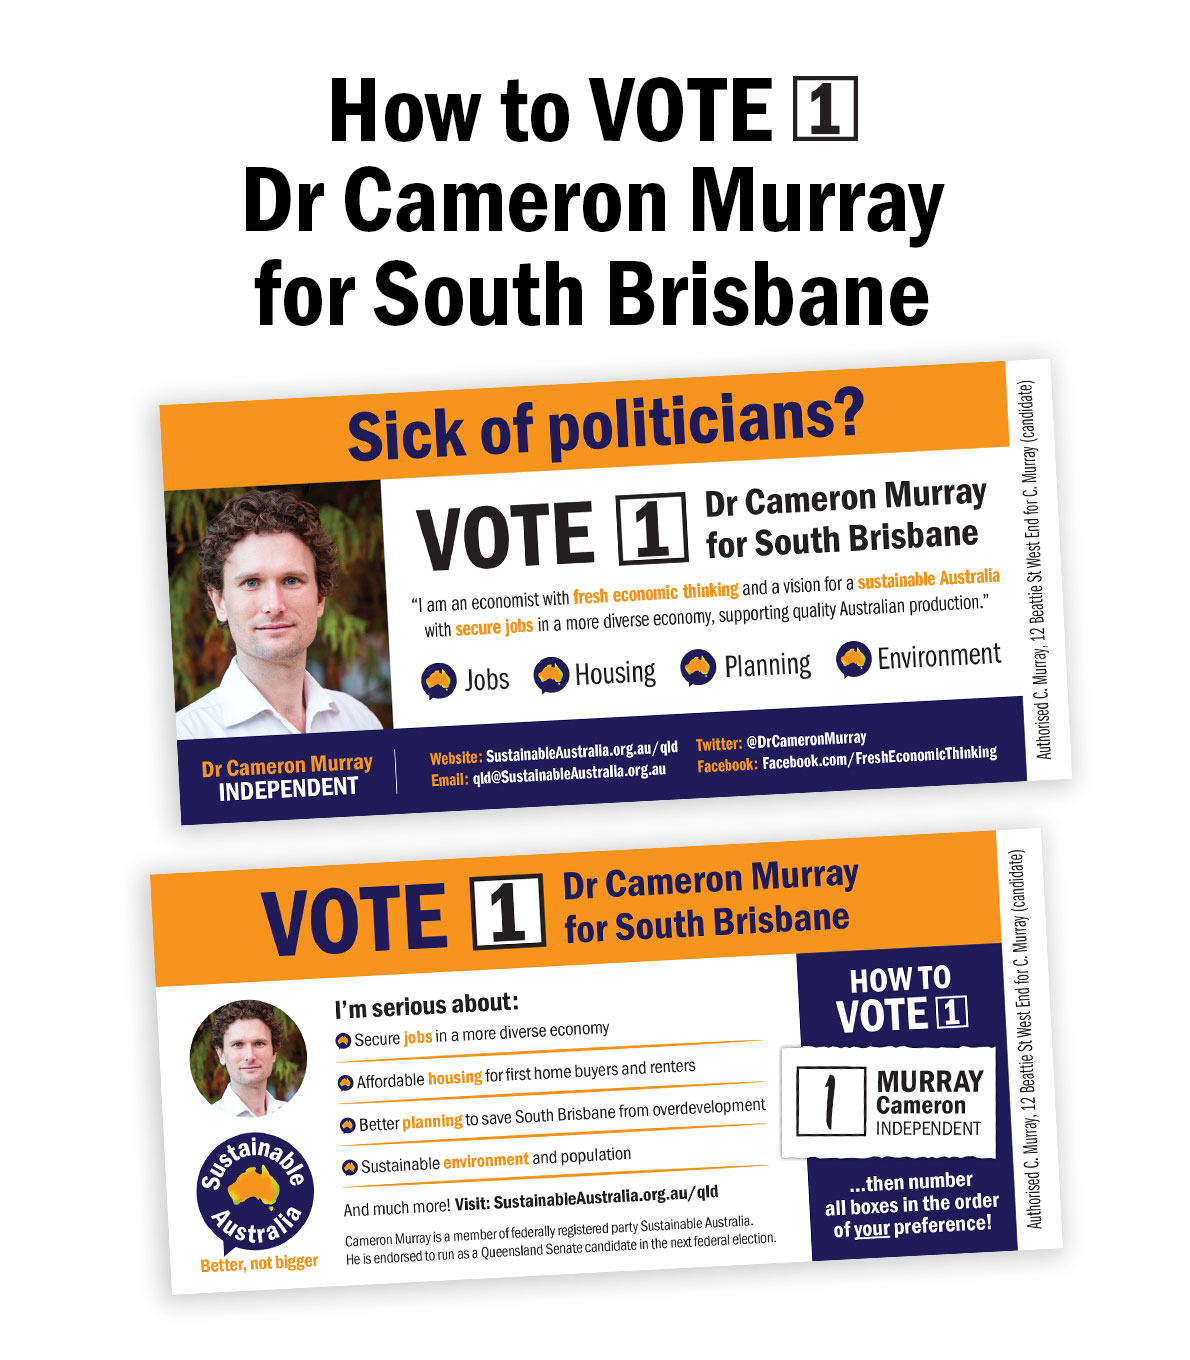 7040_SUS_CameronMurray_South-Brisbane_HTV.jpg